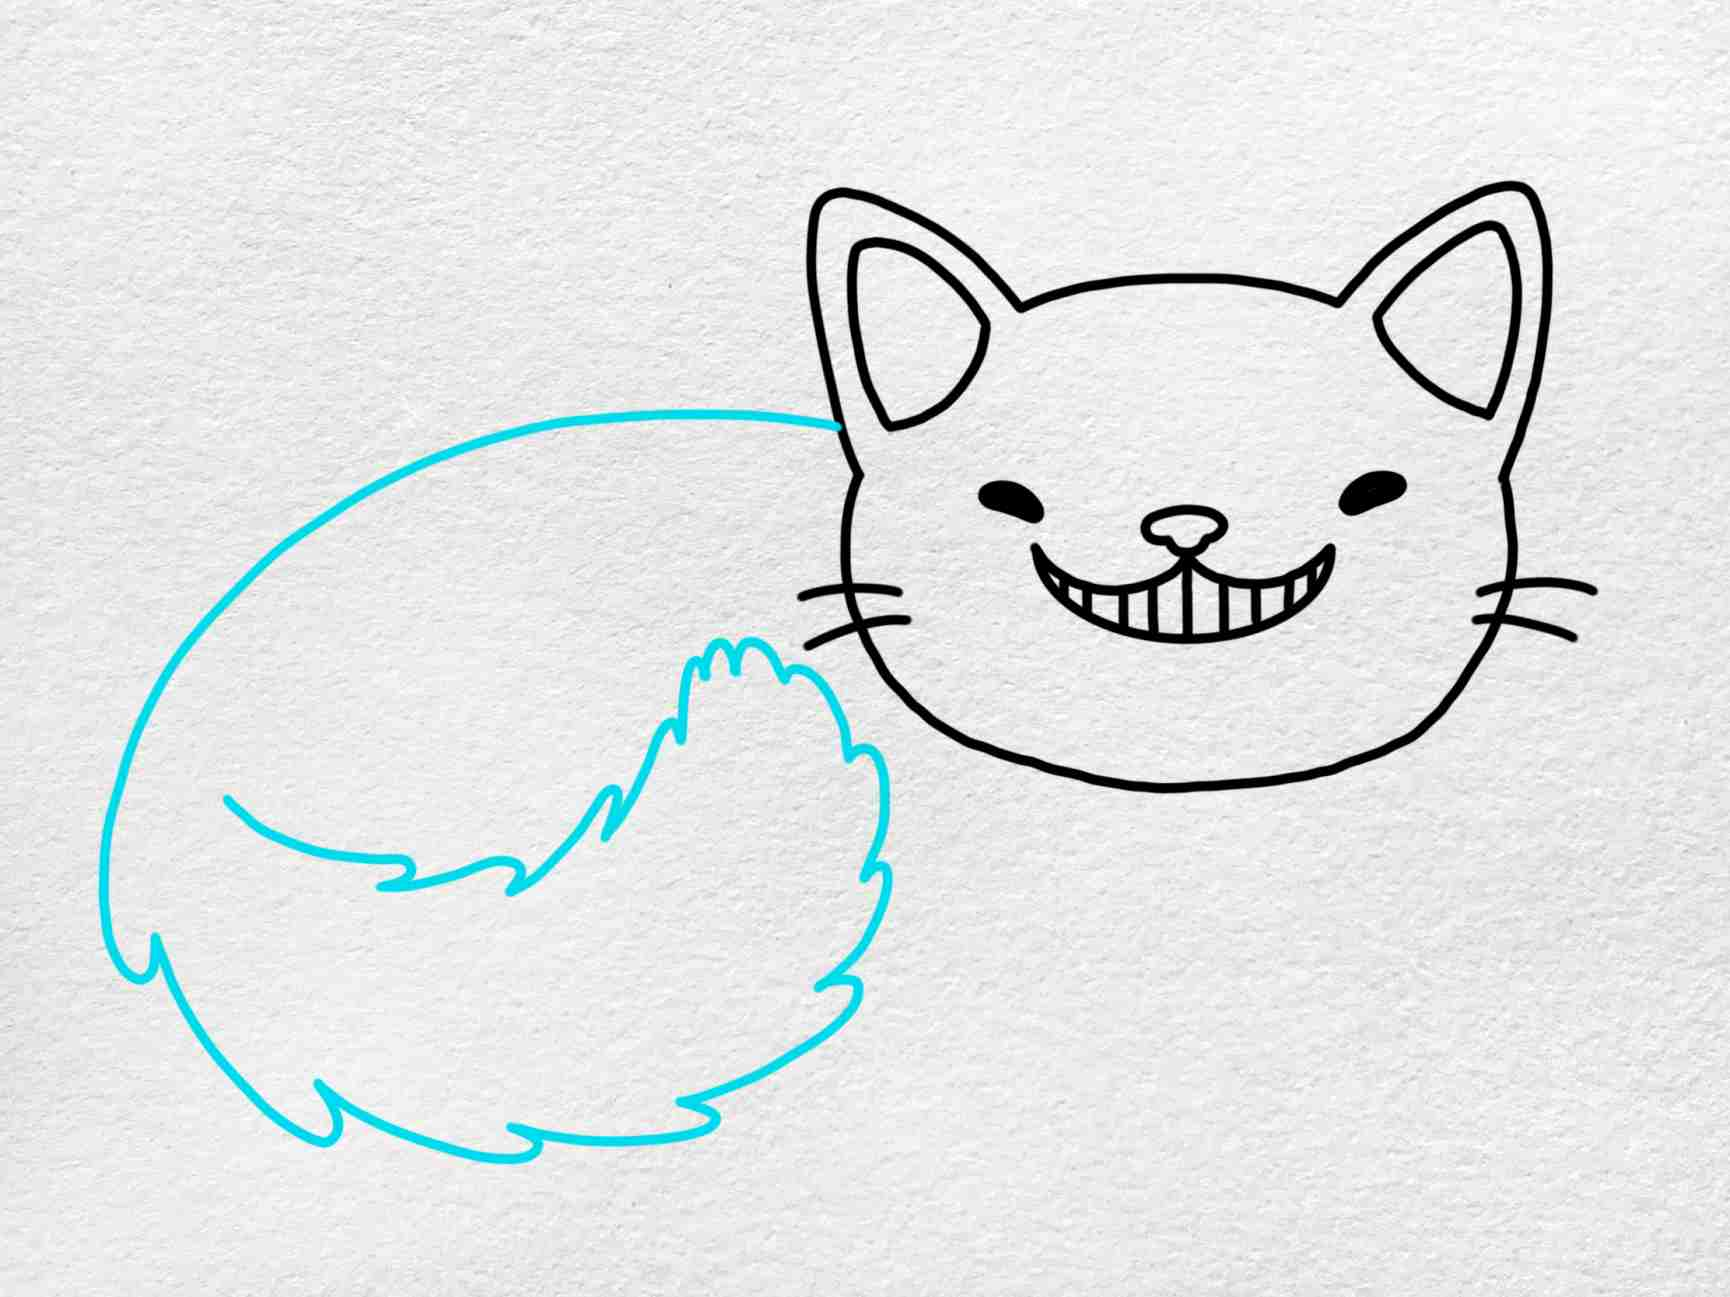 Cheshire Cat Drawing: Step 4